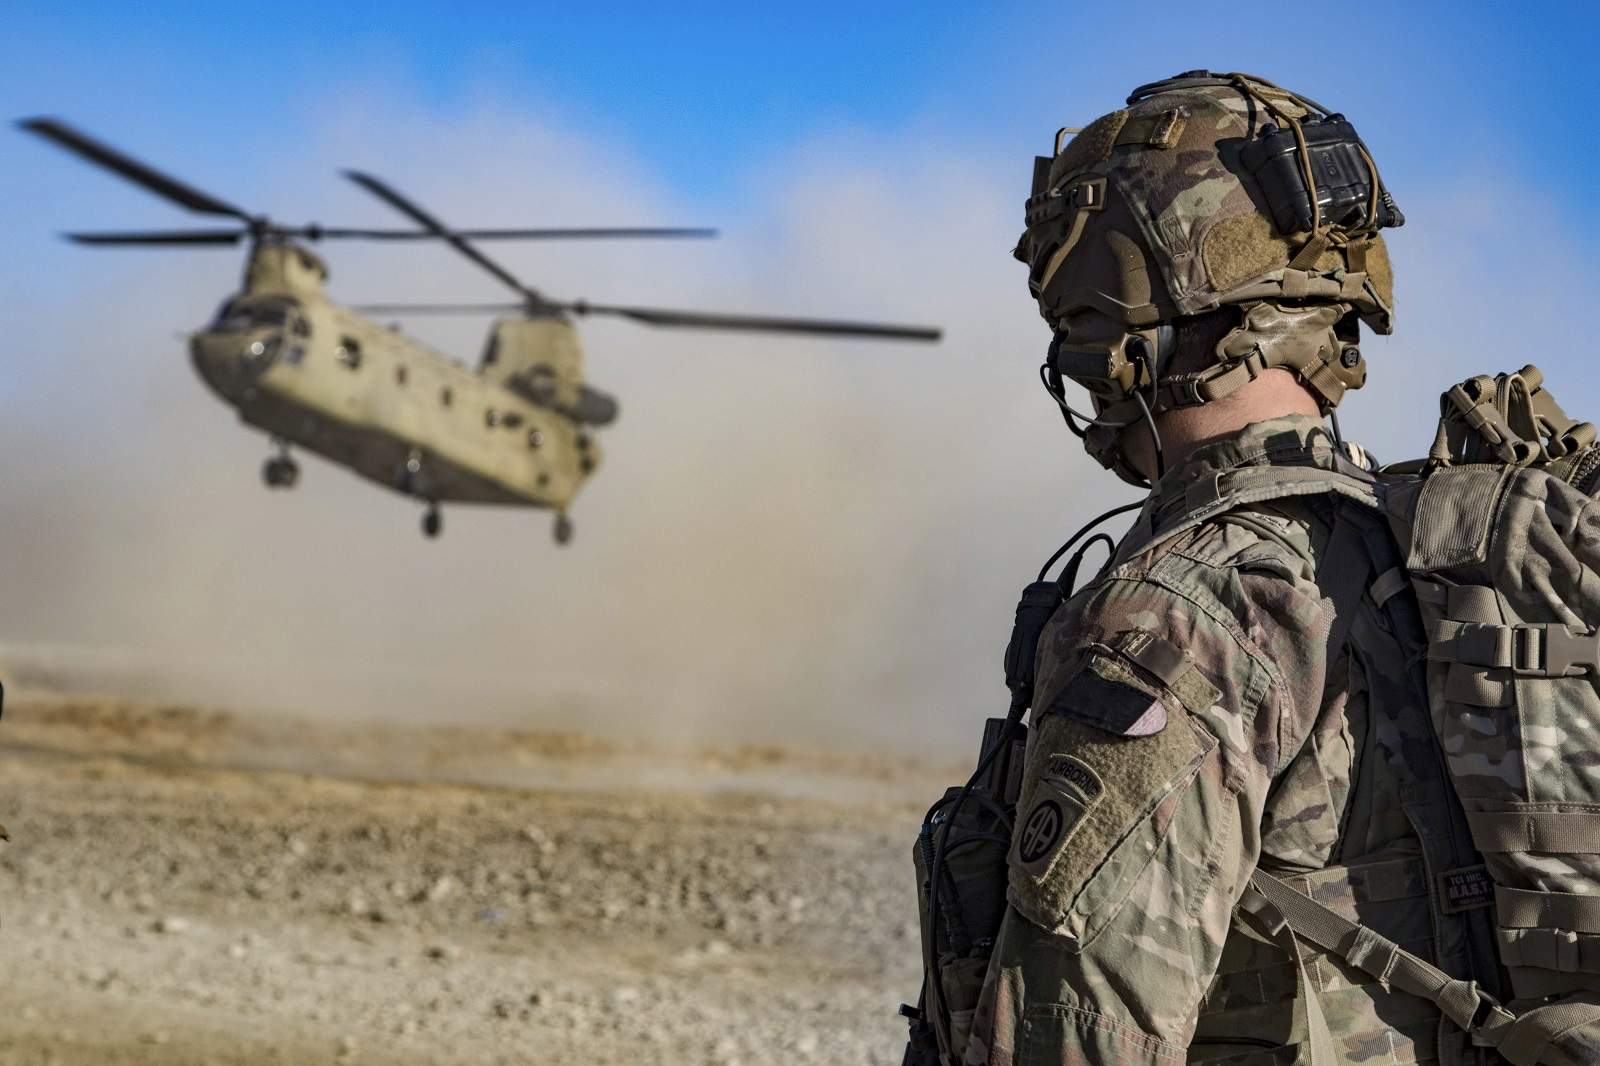 Biden views the costs of the war in Afghanistan as cumulative and has long advocated for a policy that would bring closure. A chinook lands in southeastern Afghanistan, Dec 2019 (Army Master Sgt Alejandro Licea/US Dept of Defense)